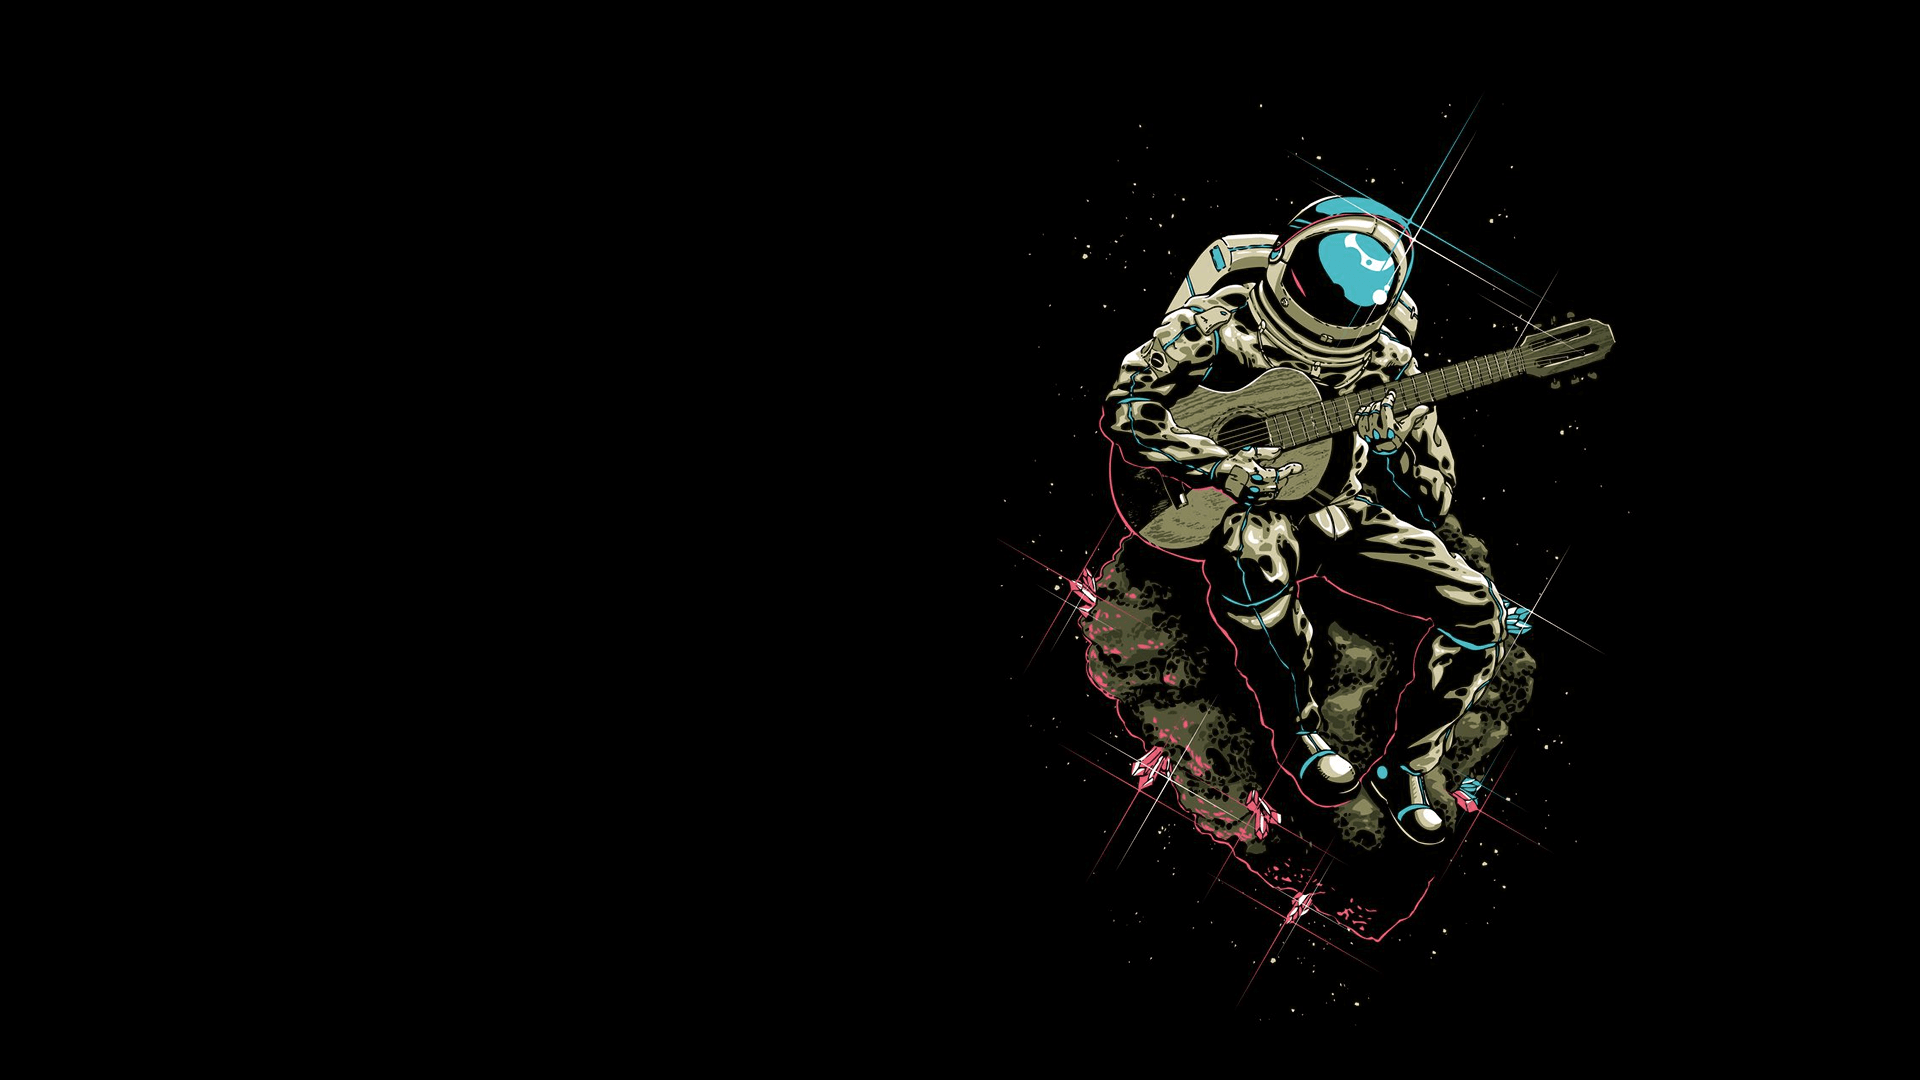 astronaut in space tumblr wallpaper - photo #5